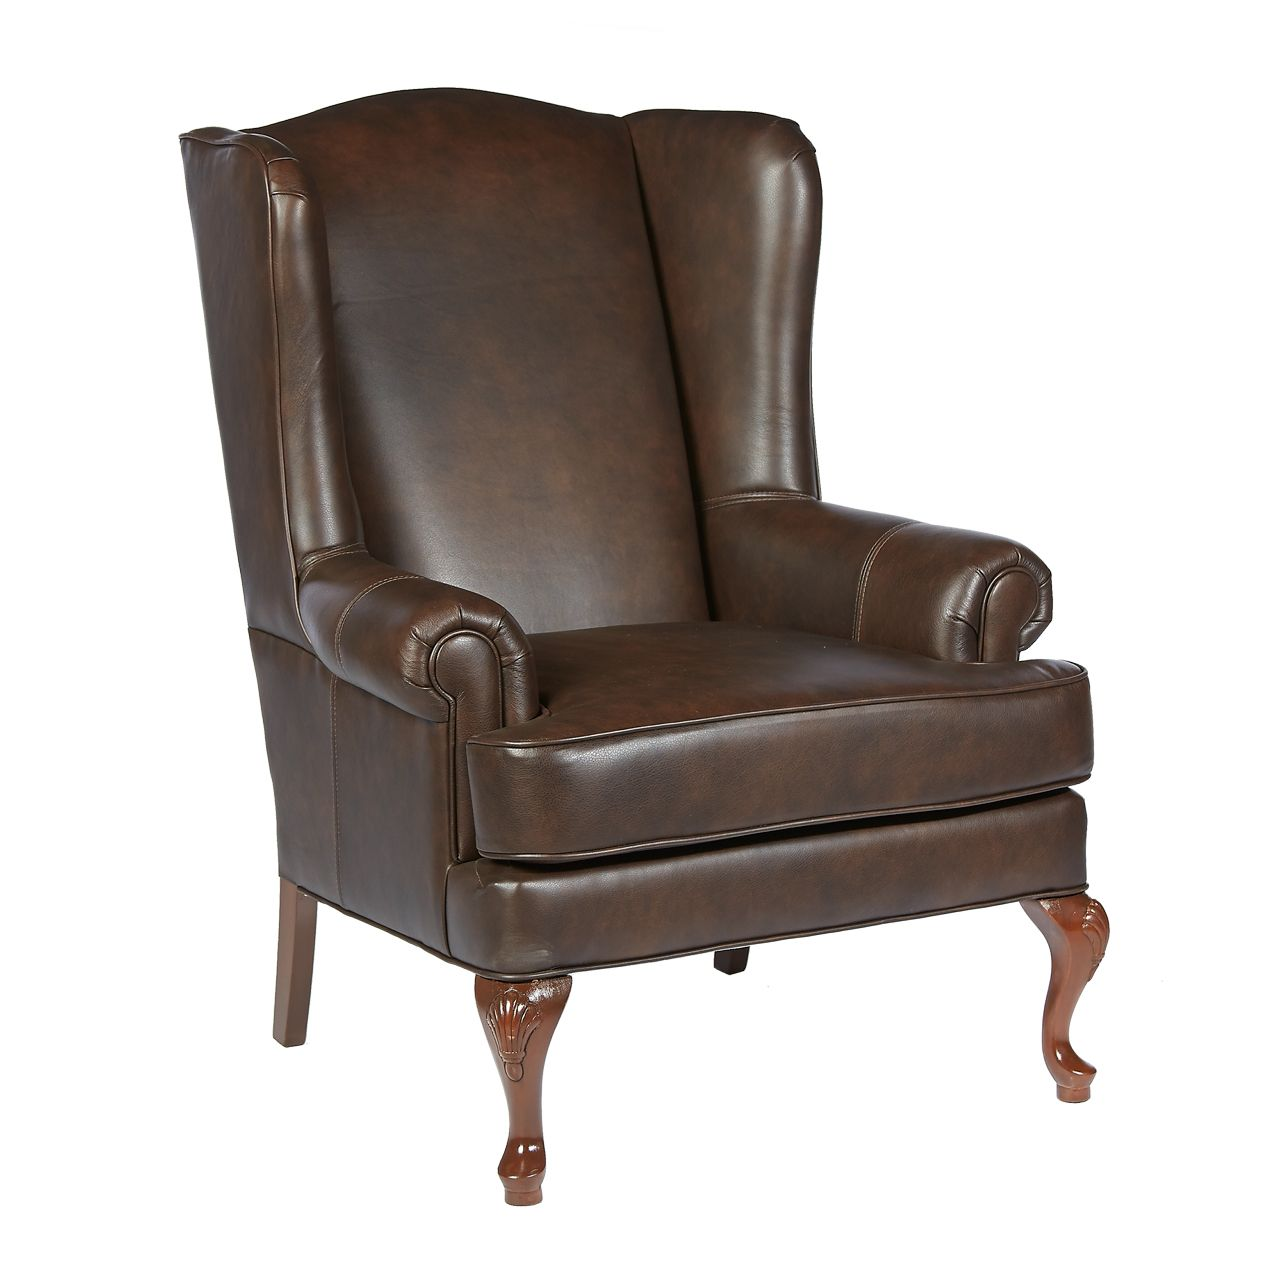 Leather Wingback Chairs Canada Skeleton Rocking Chair Milhouse Bombay Furniture